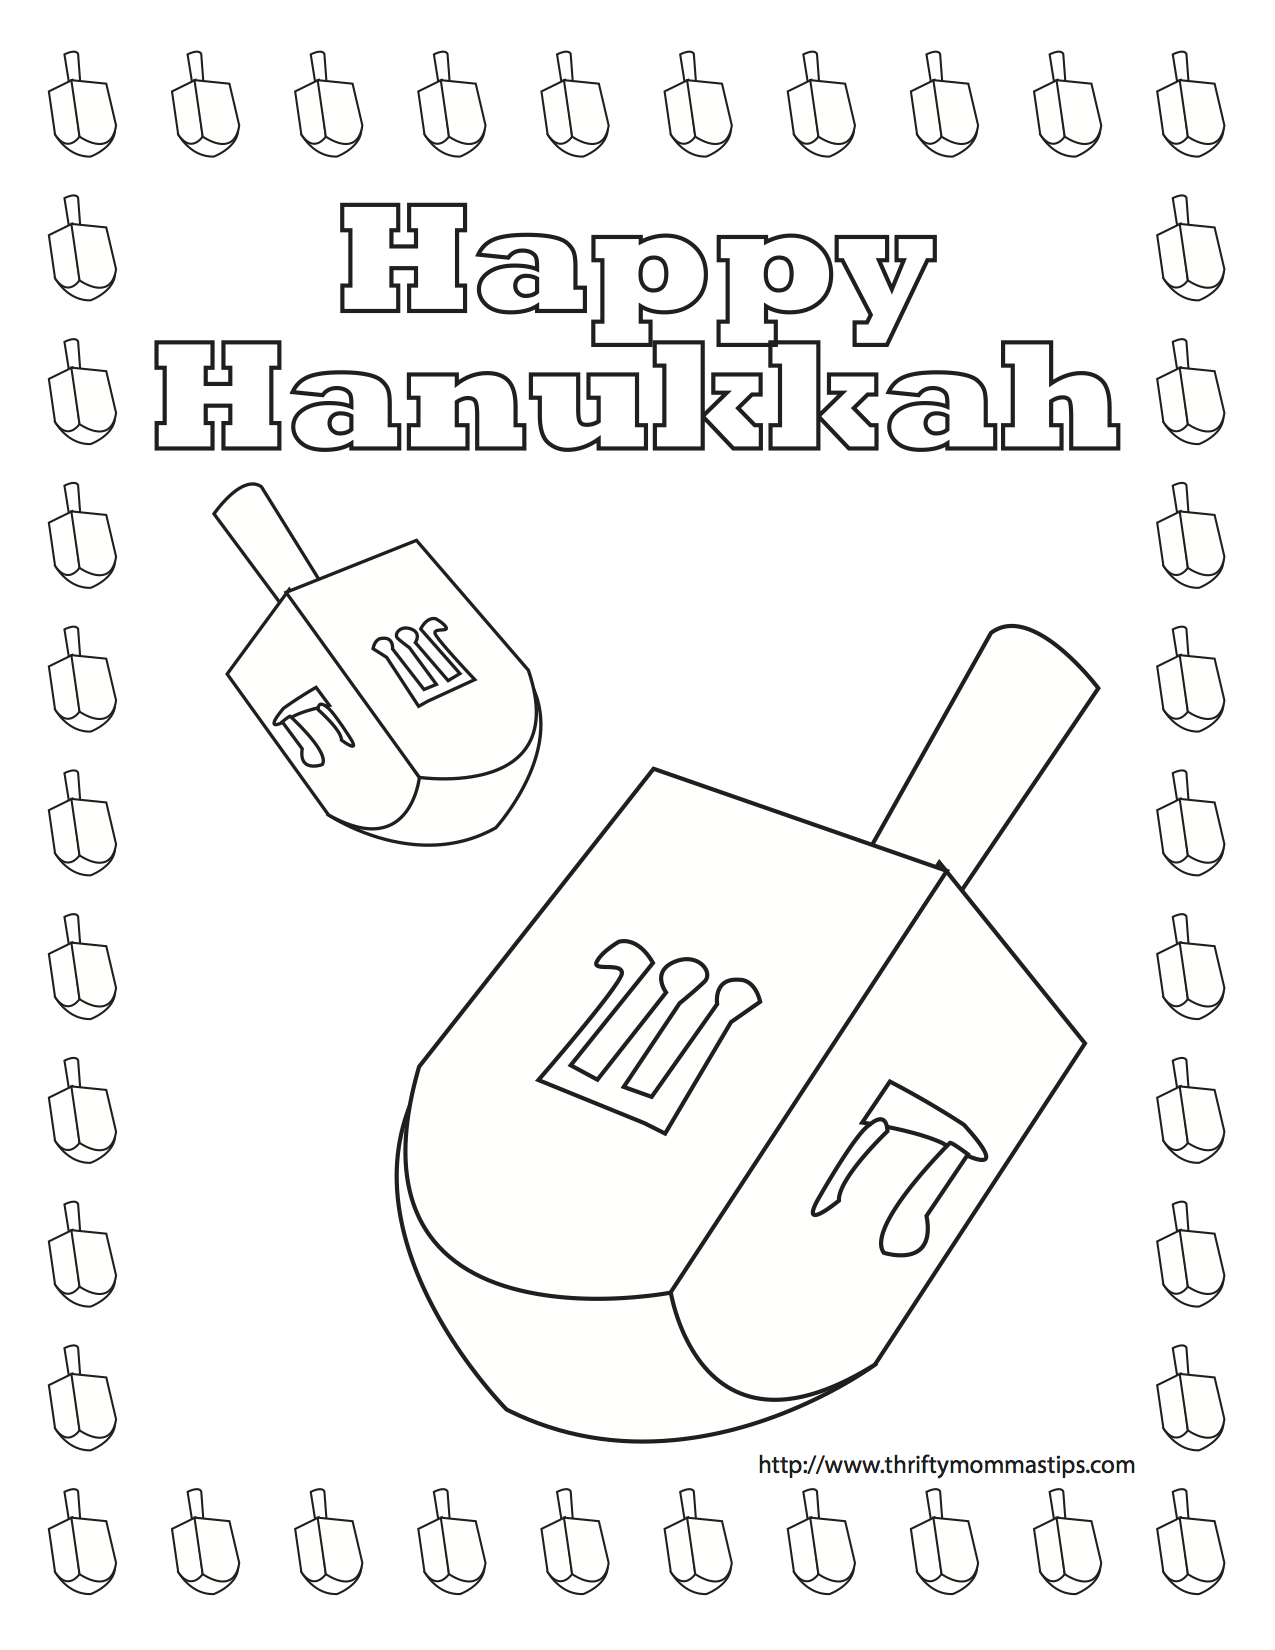 free printable dreidel coloring pages. Black Bedroom Furniture Sets. Home Design Ideas